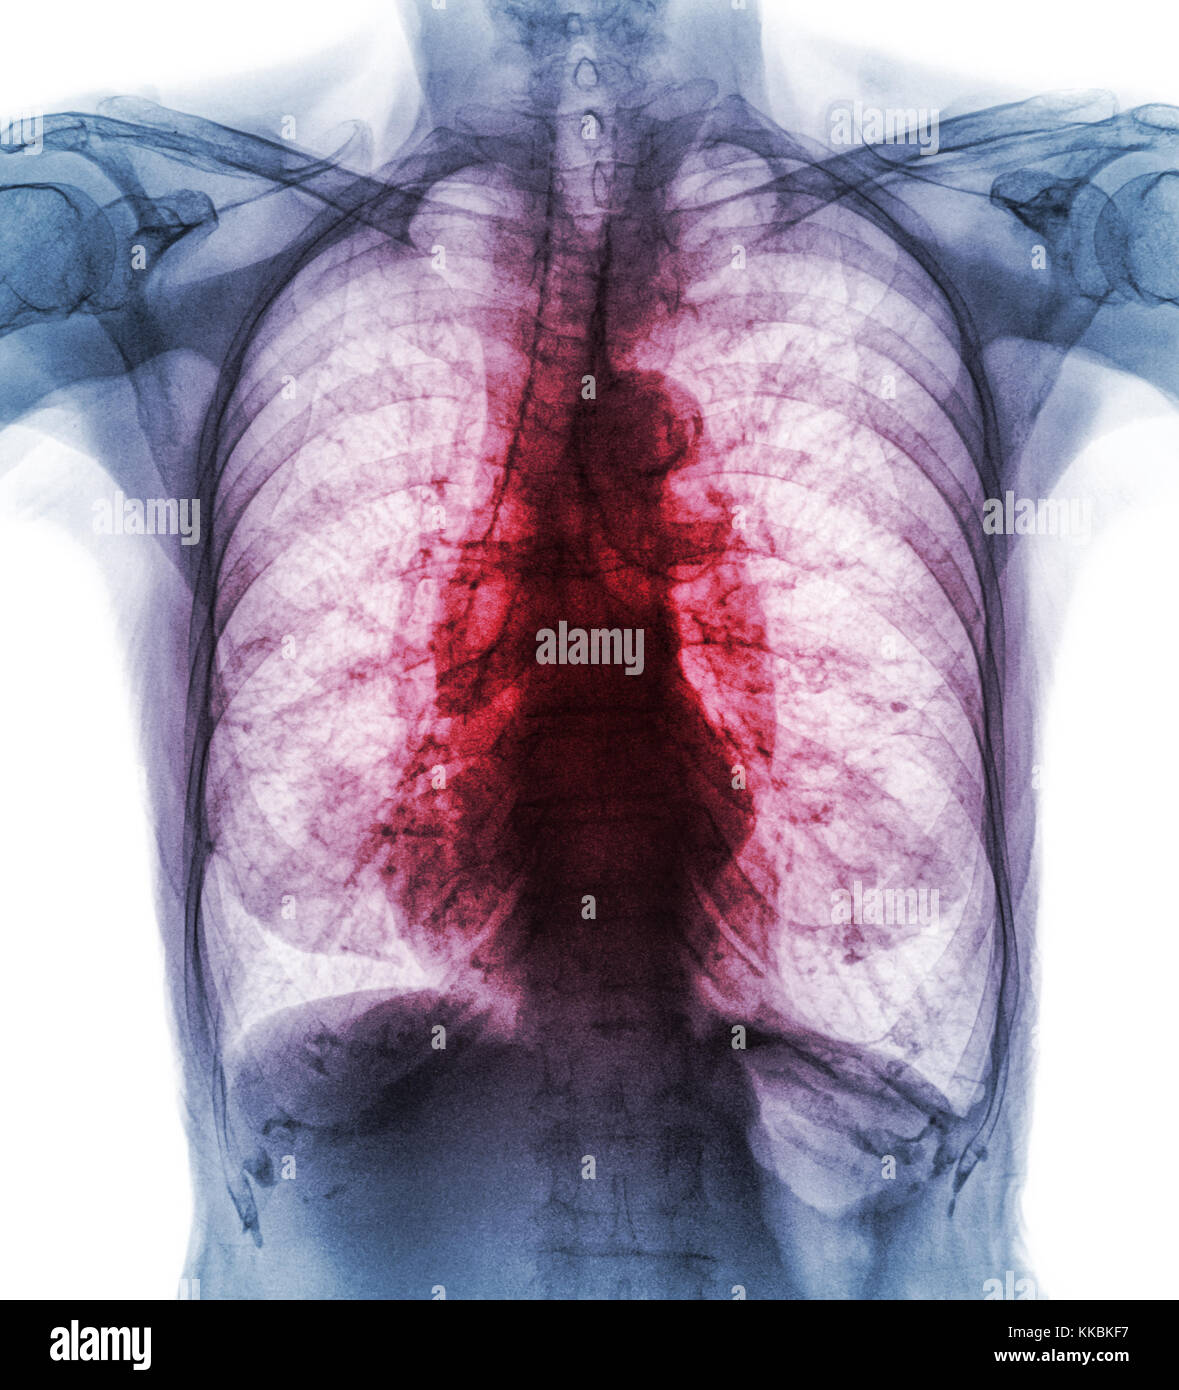 Pulmonary Tuberculosis . Film chest x-ray show interstitial infiltrate both lung due to Mycobacterium tuberculosis - Stock Image